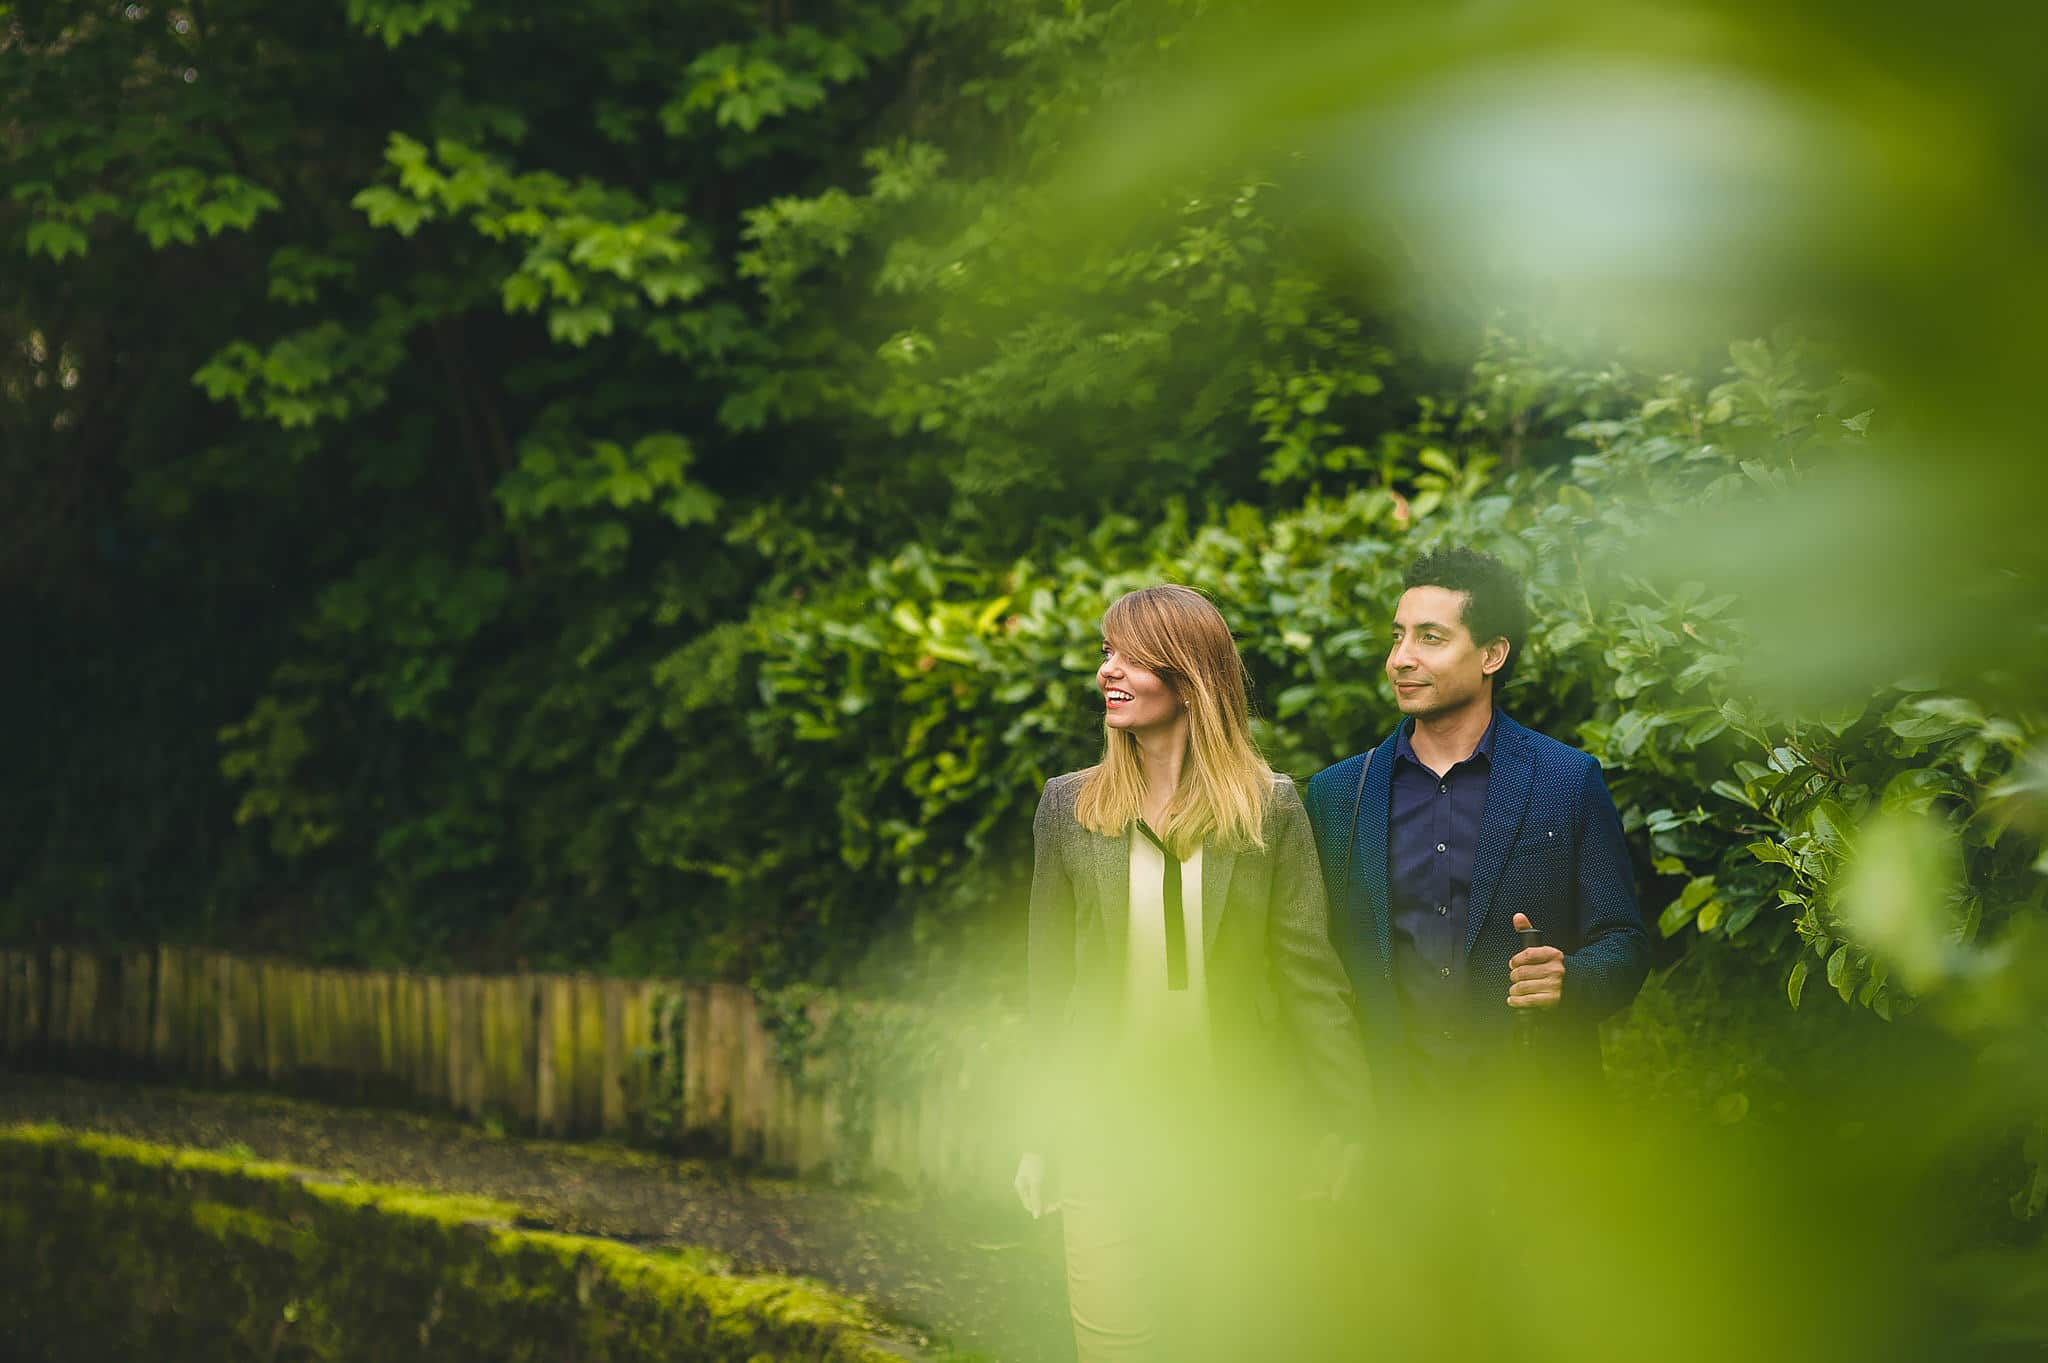 engagement photography worcester 2 - Chris + Malgosia | Engagement photography Worcester